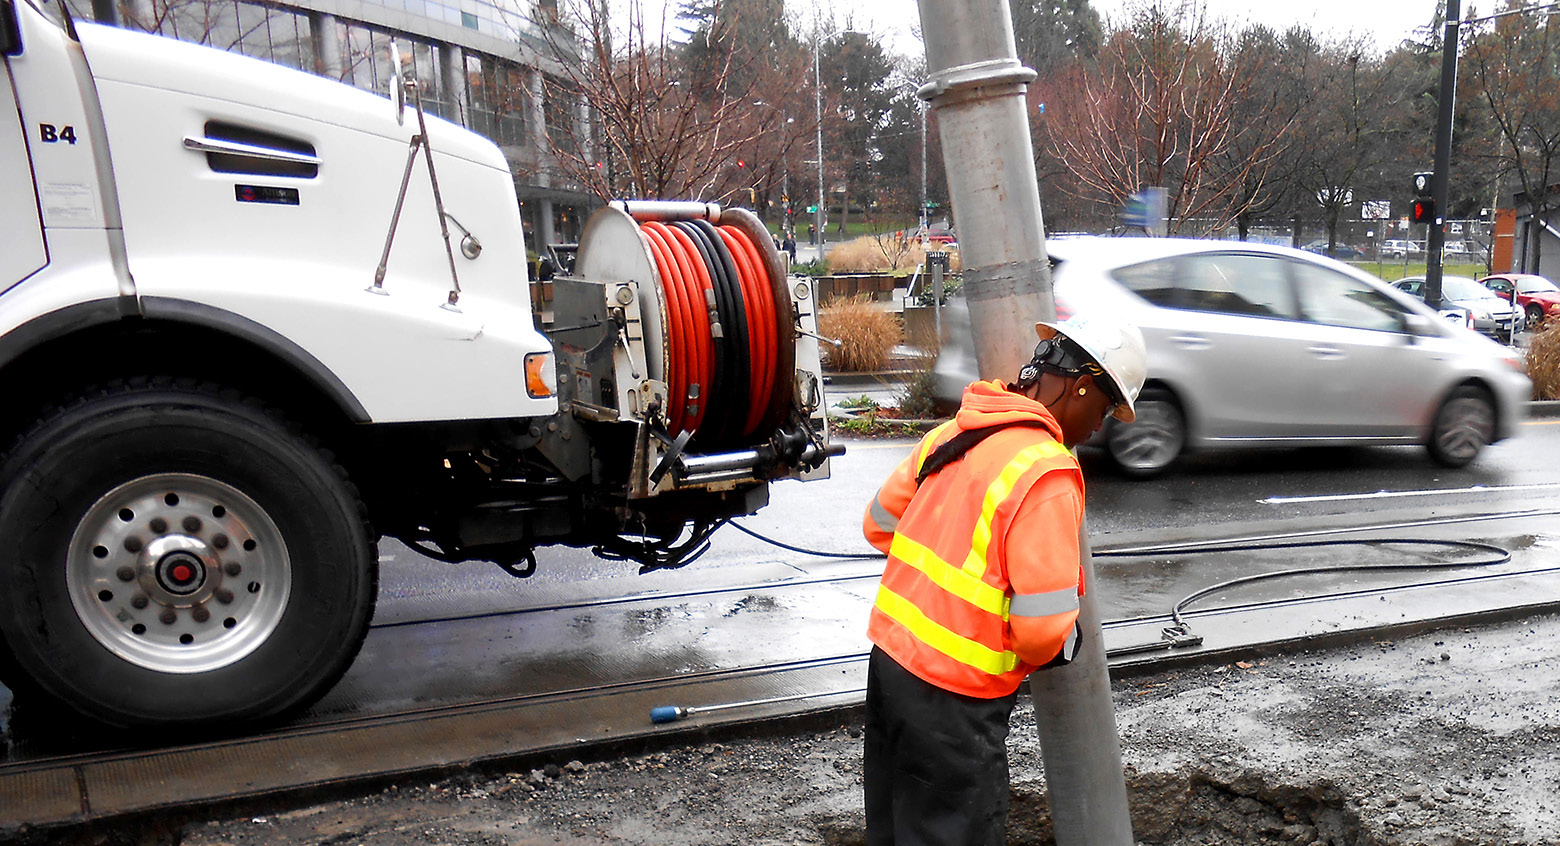 Kitsap County Stormwater System Operation & Maintenance